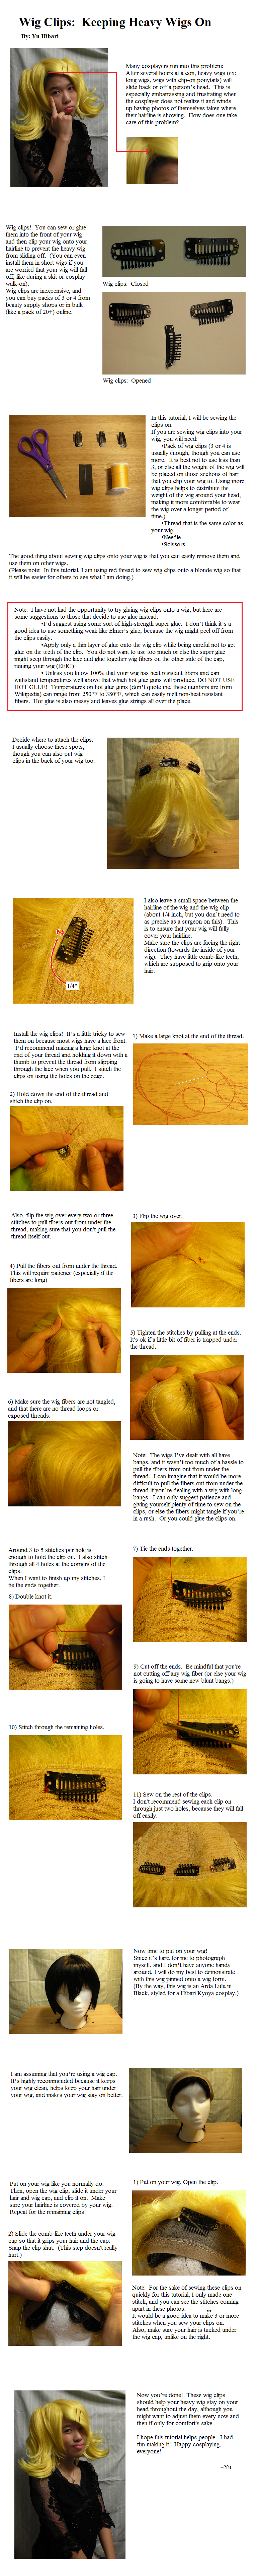 Tutorial: Wig Clips by GingaBishounen